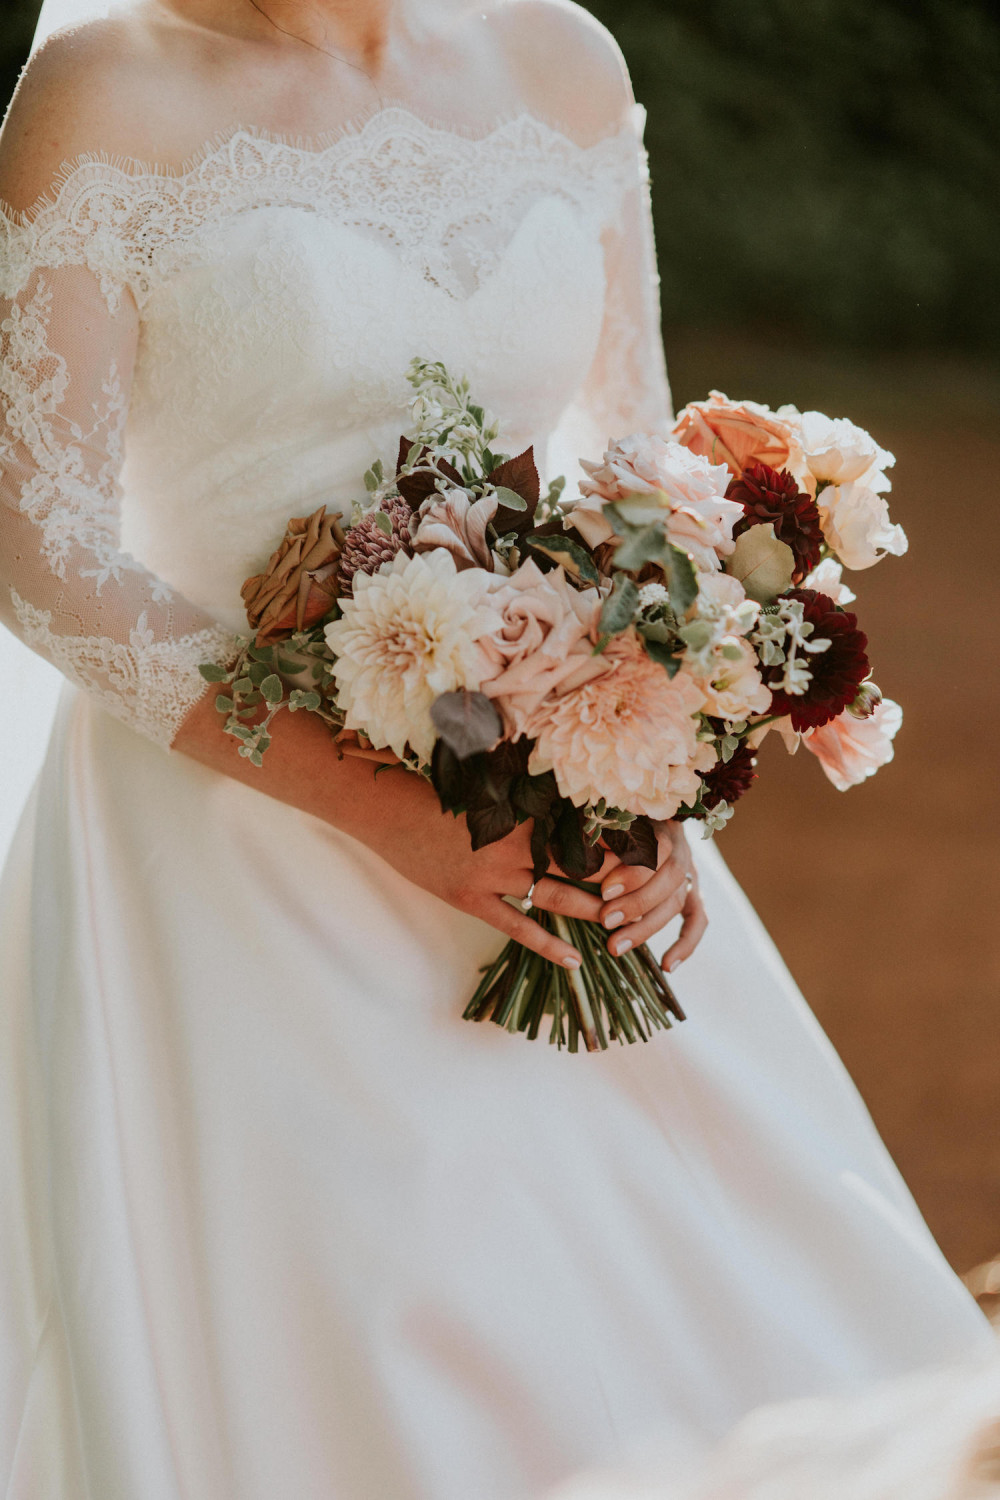 A bride holding beautiful wedding flowers